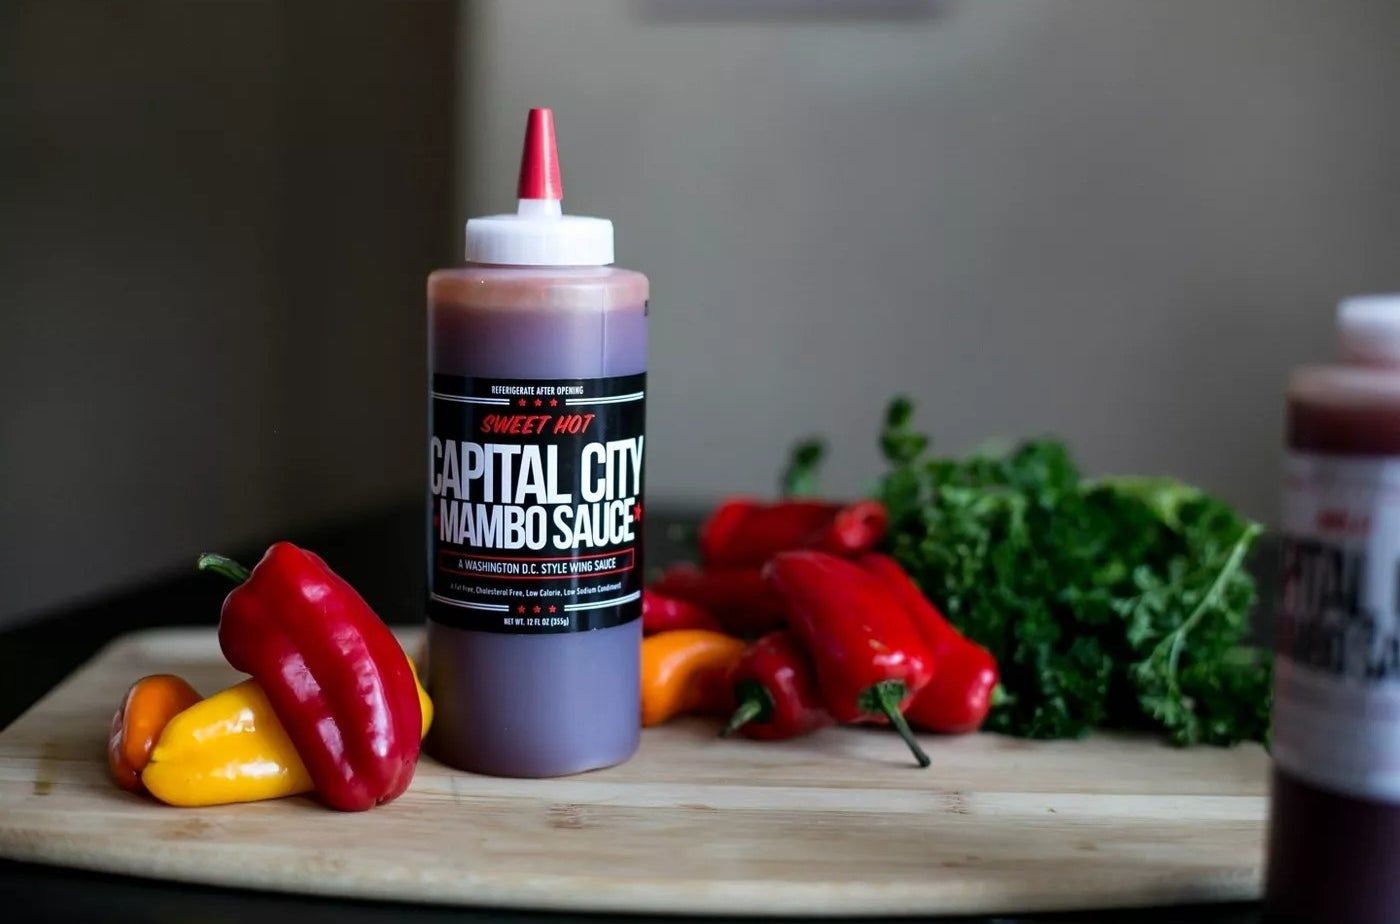 """The bottle of sauce says """"CAPITAL CITY MAMBO SAUCE"""" and is surrounded by peppers and greens"""